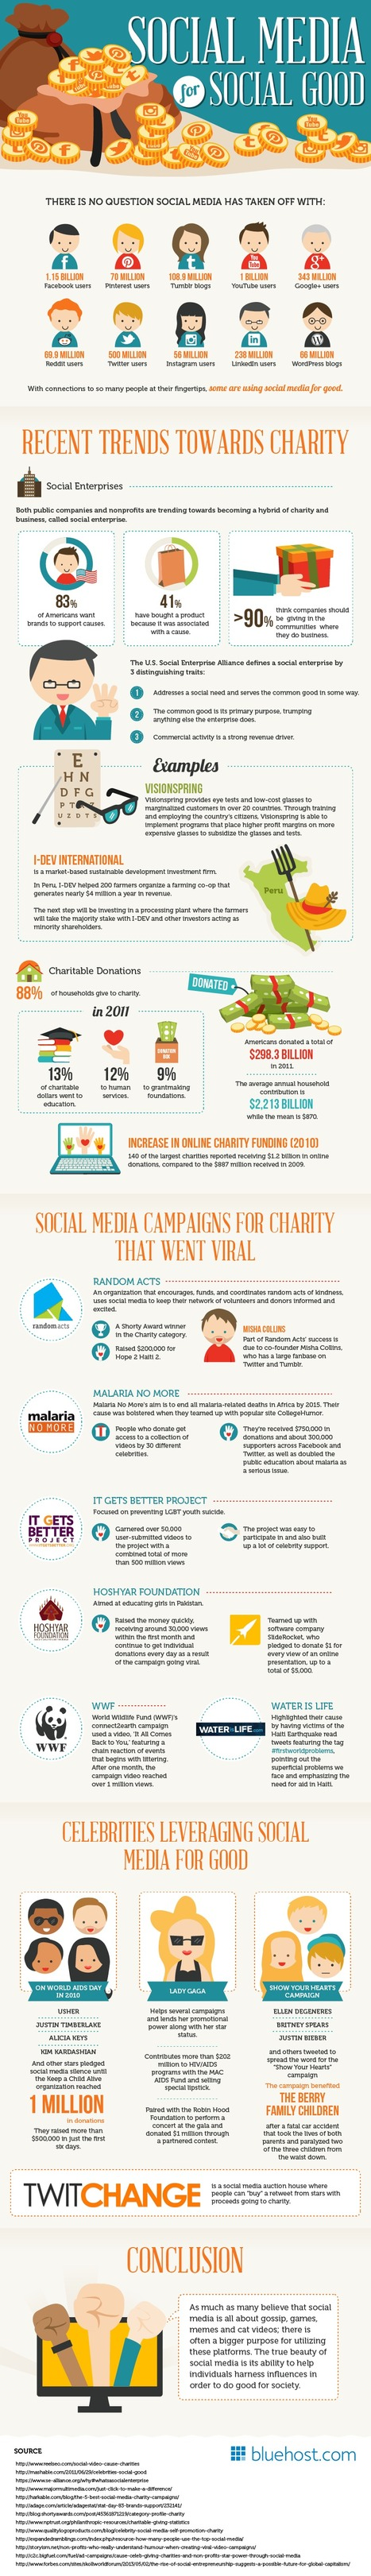 Brands embrace social media for social good [INFOGRAPHIC] | Social Media and Analytics | Scoop.it